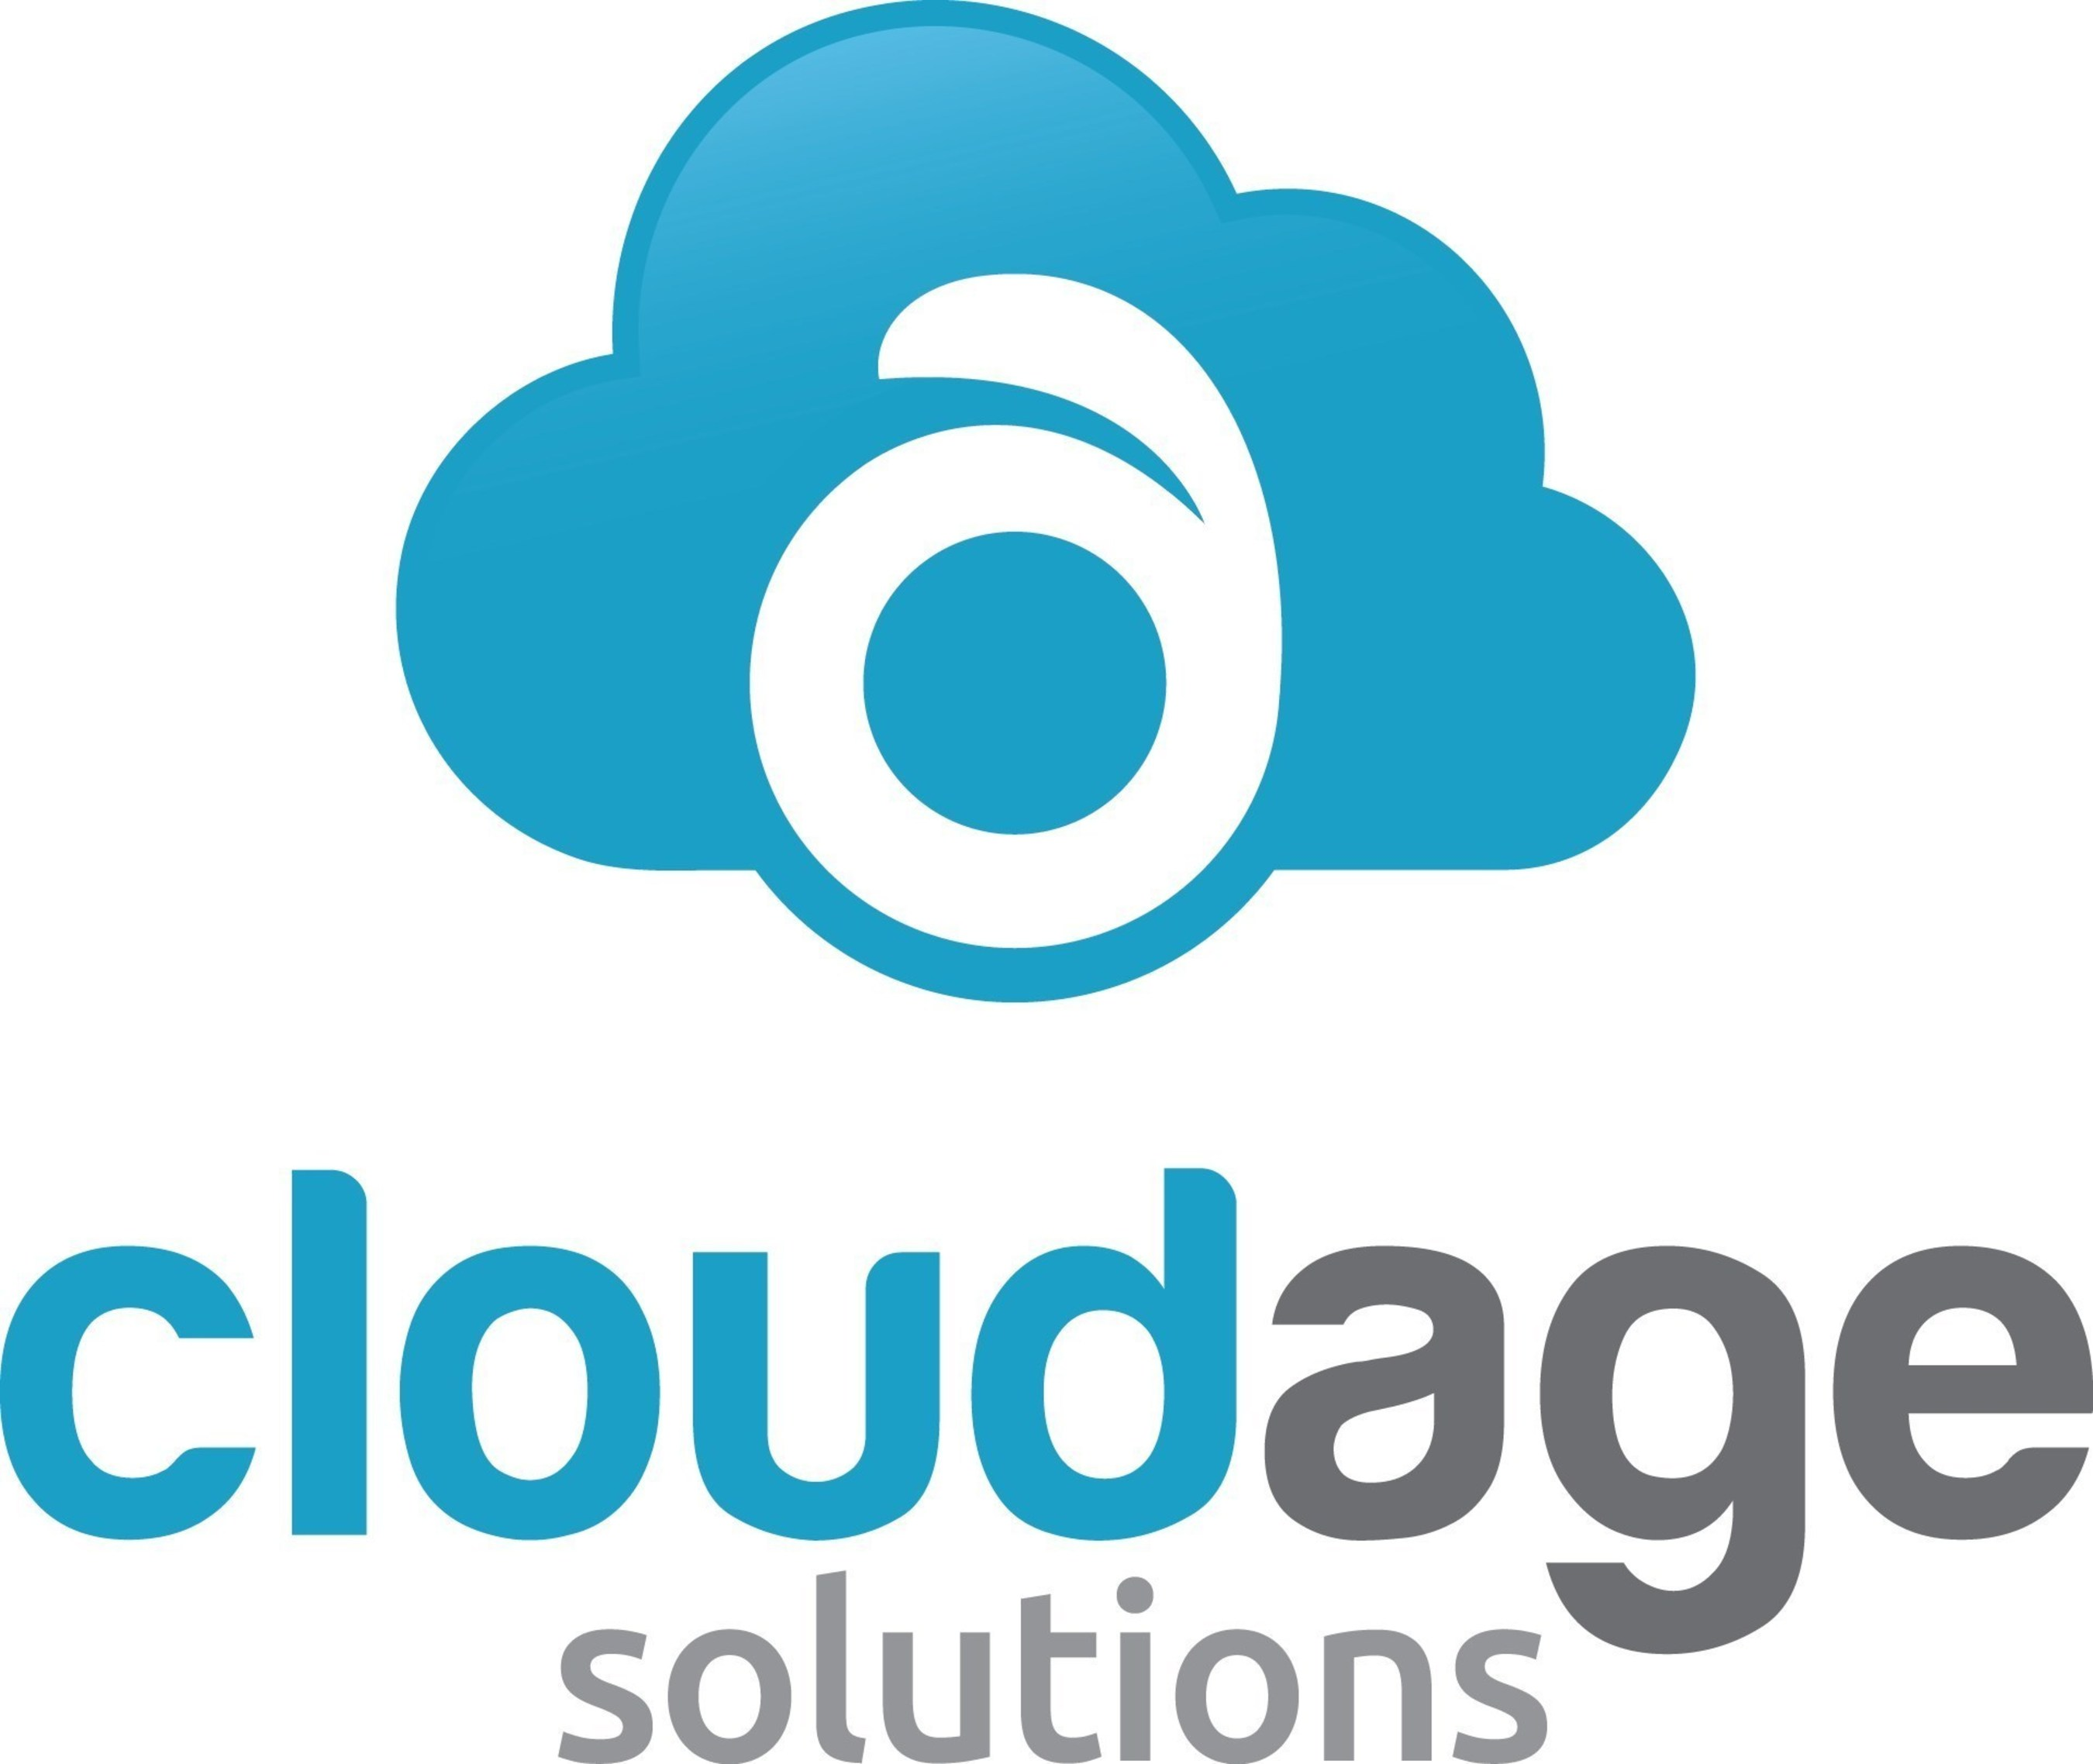 learn more at www.cloudagesolutions.com